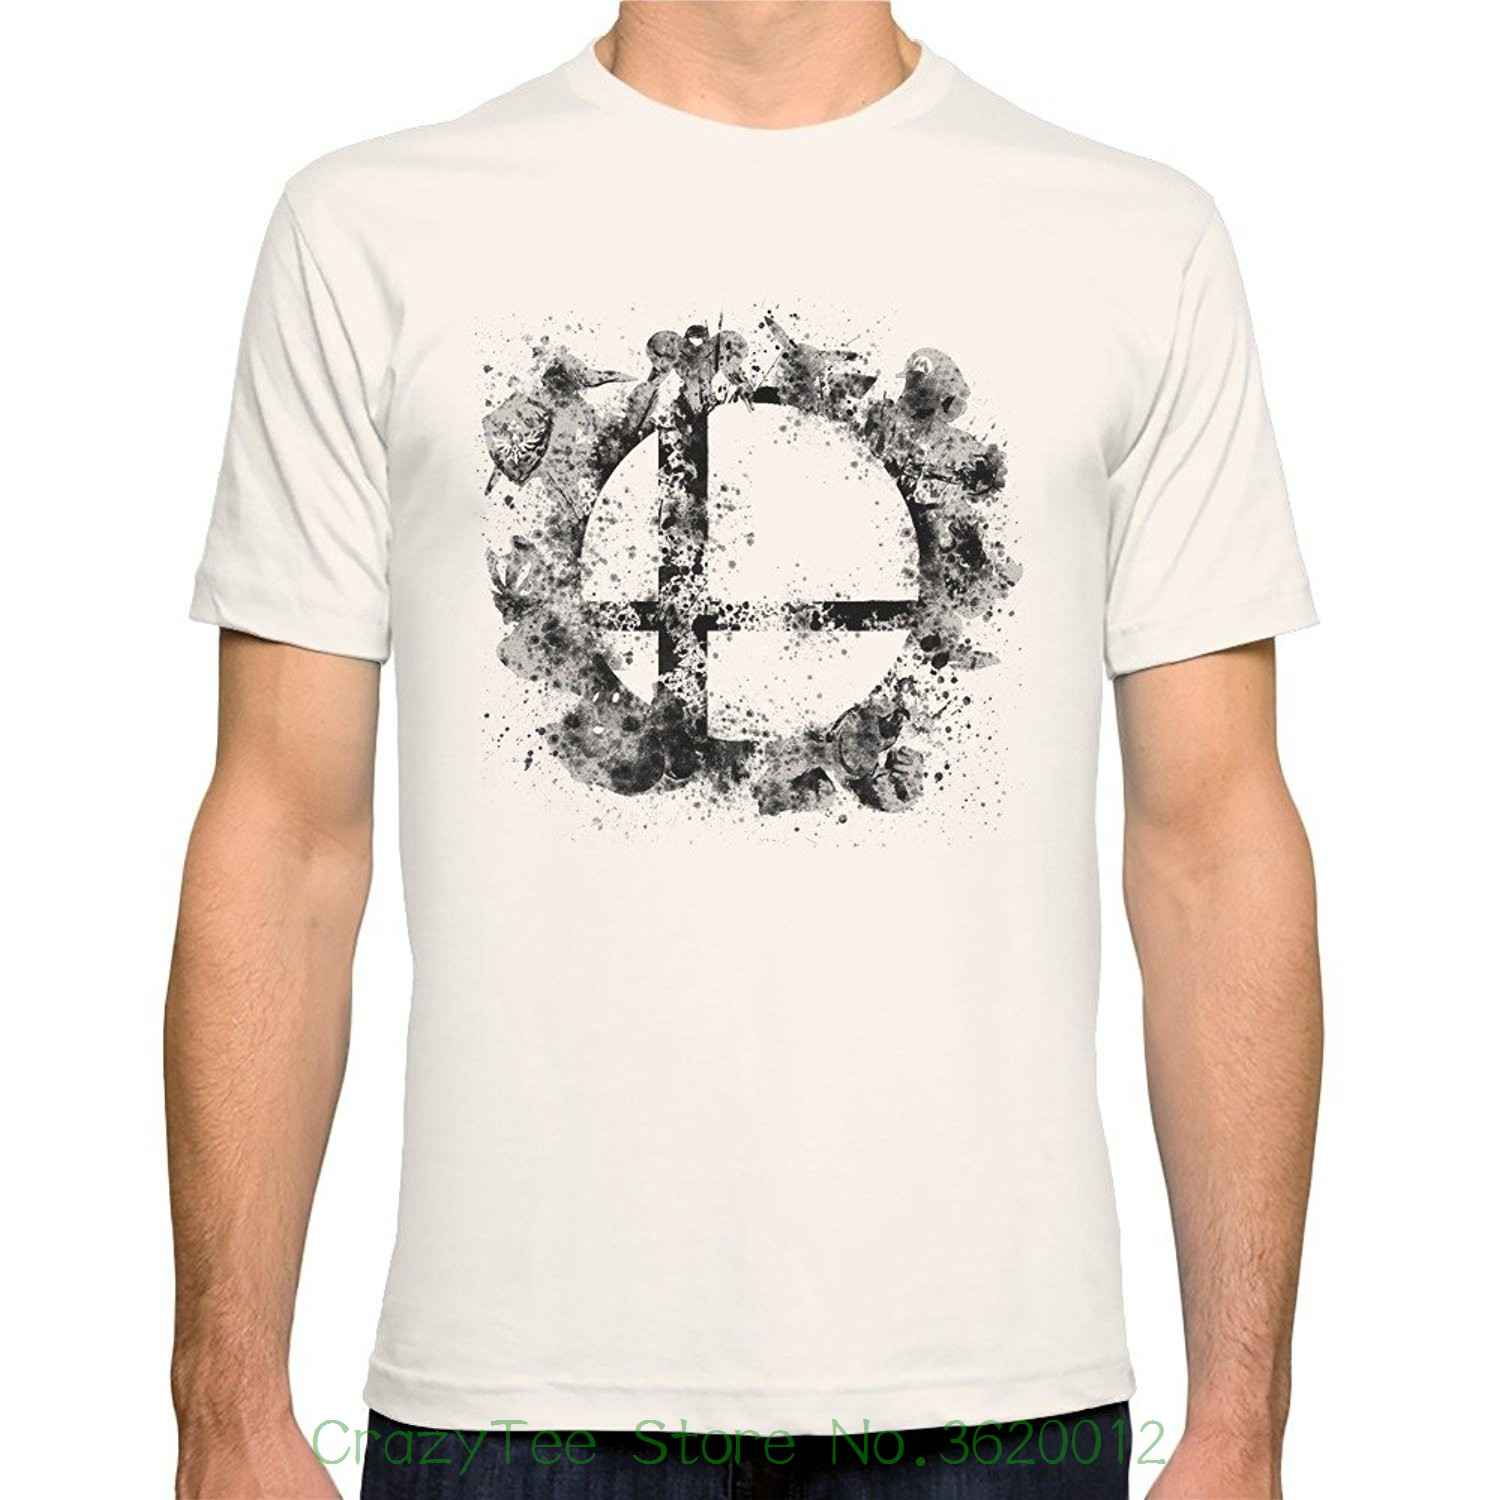 Loose Cotton T-shirts For Men Cool Tops T Shirts Men's Super Smash Bros Ink Splatter Fitted Tee